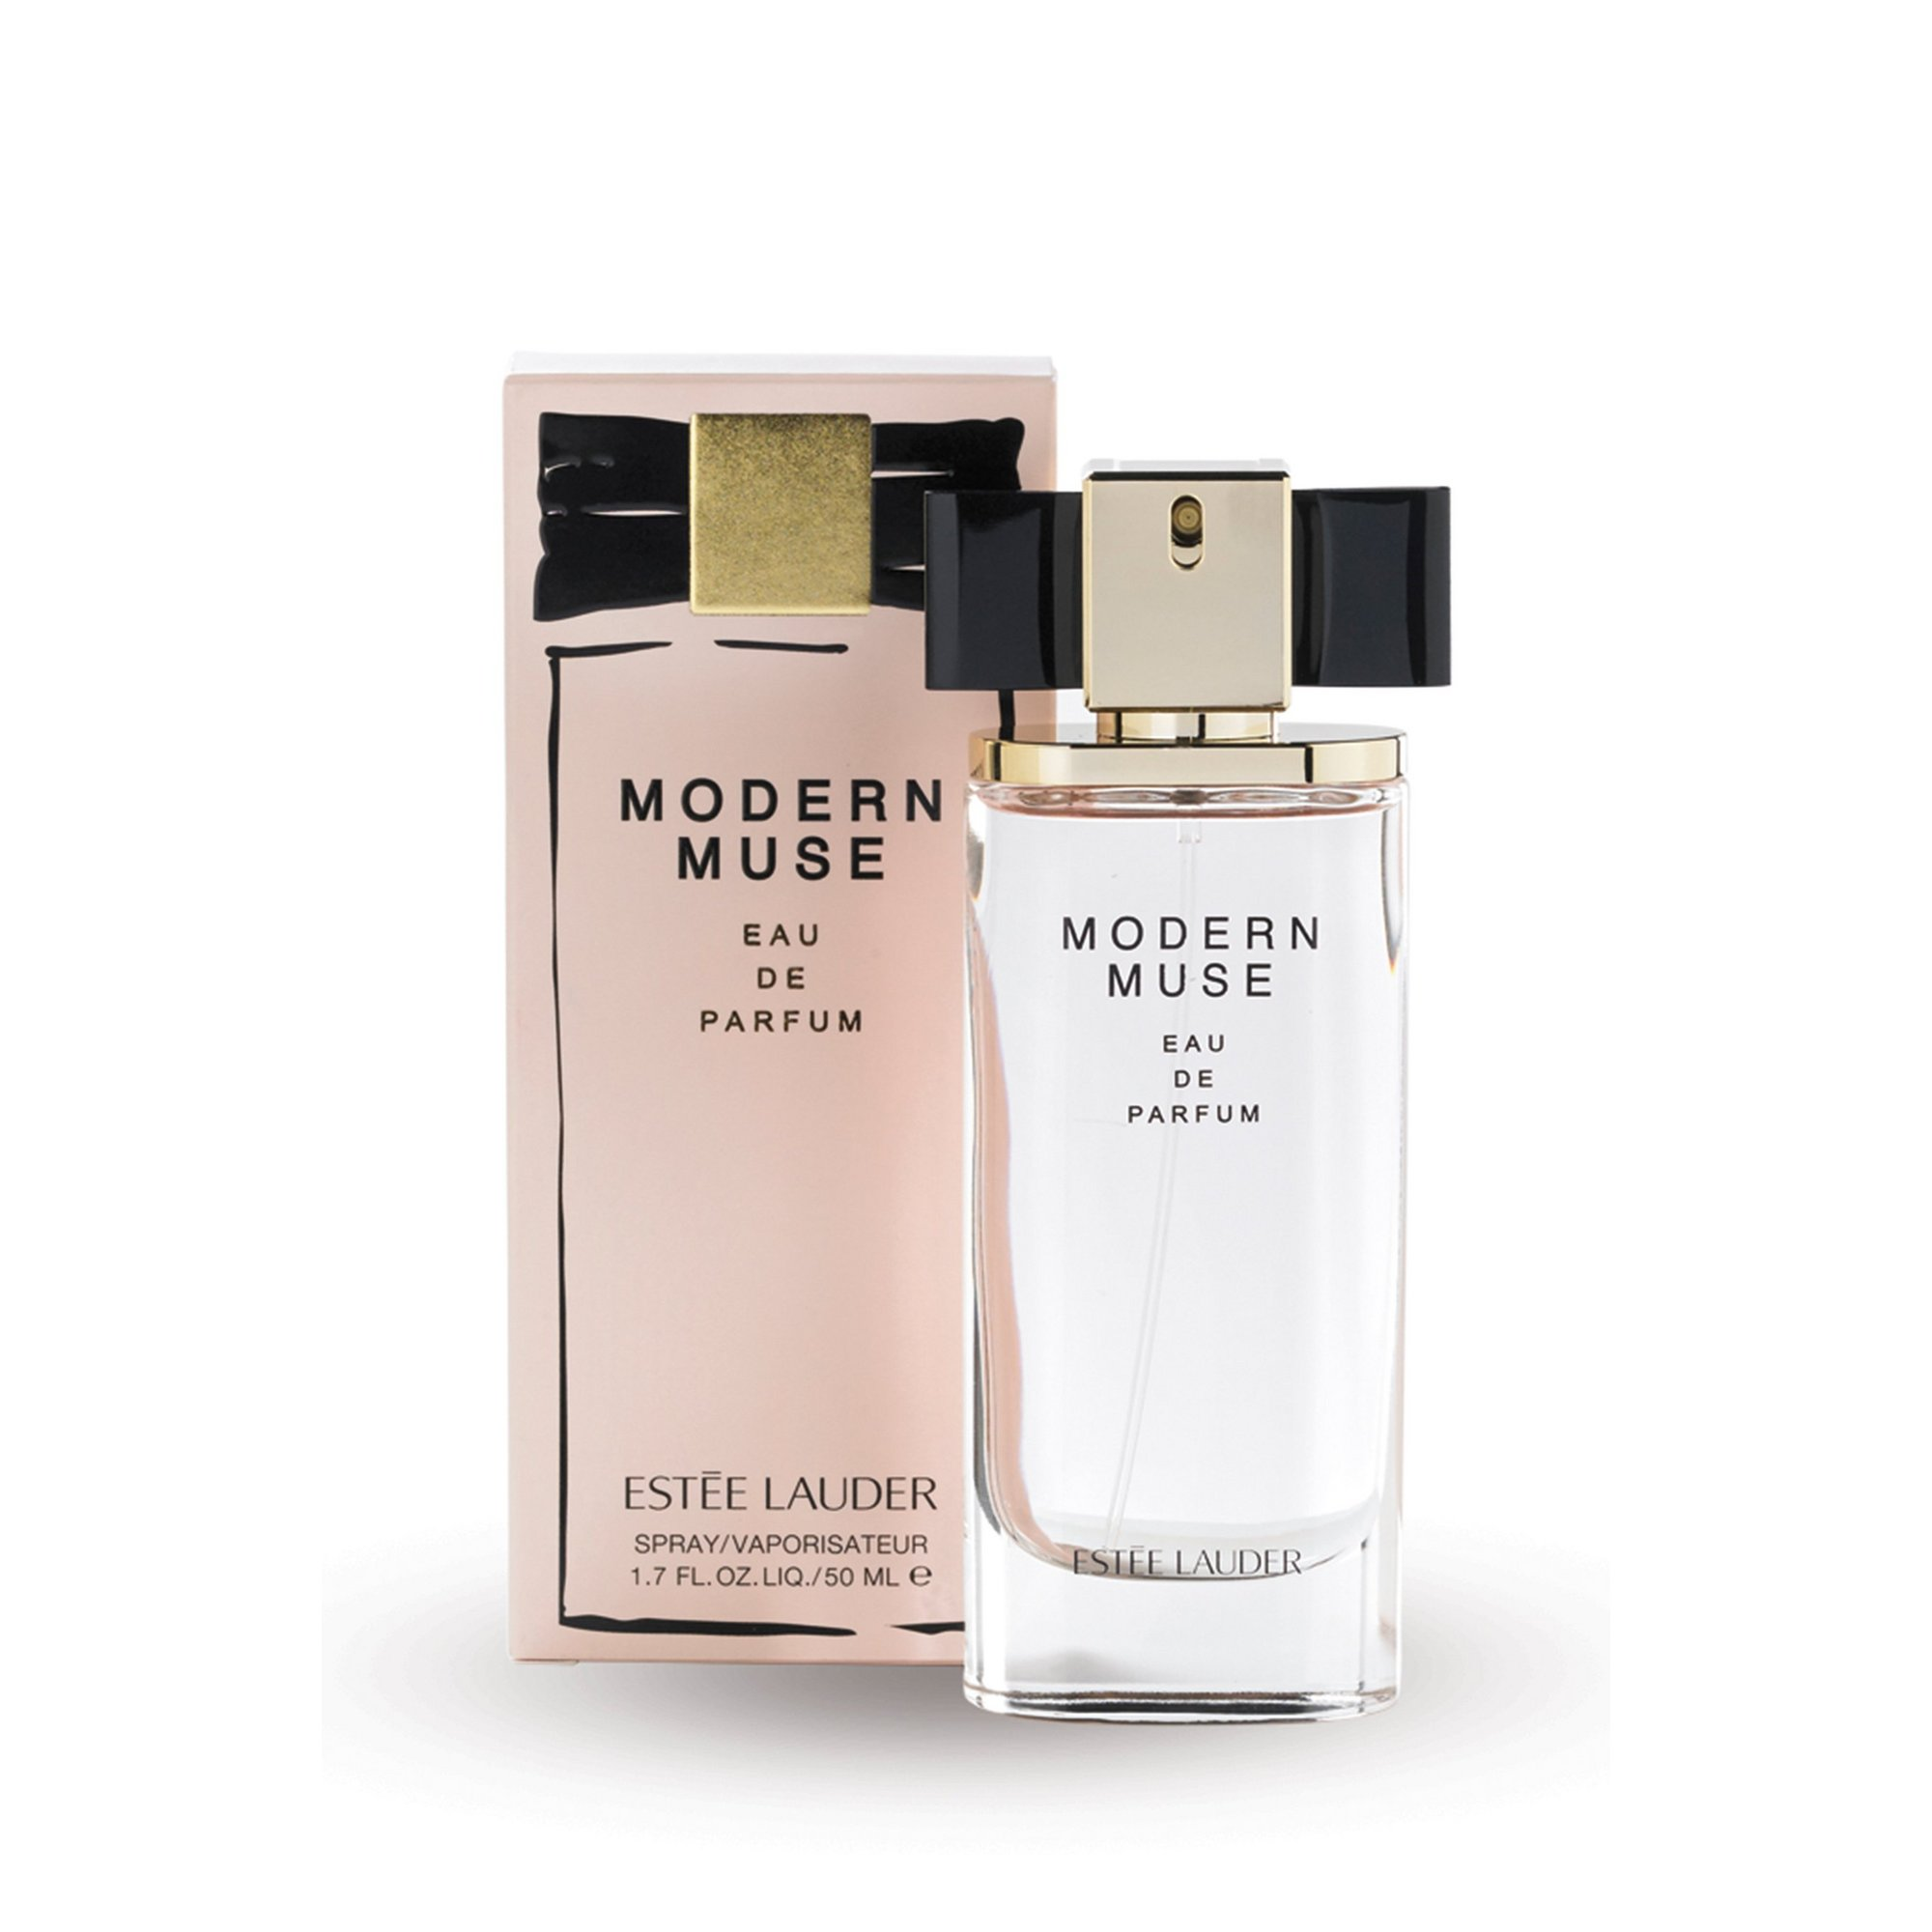 Image of Estee Lauder Modern Muse 50ml EDP